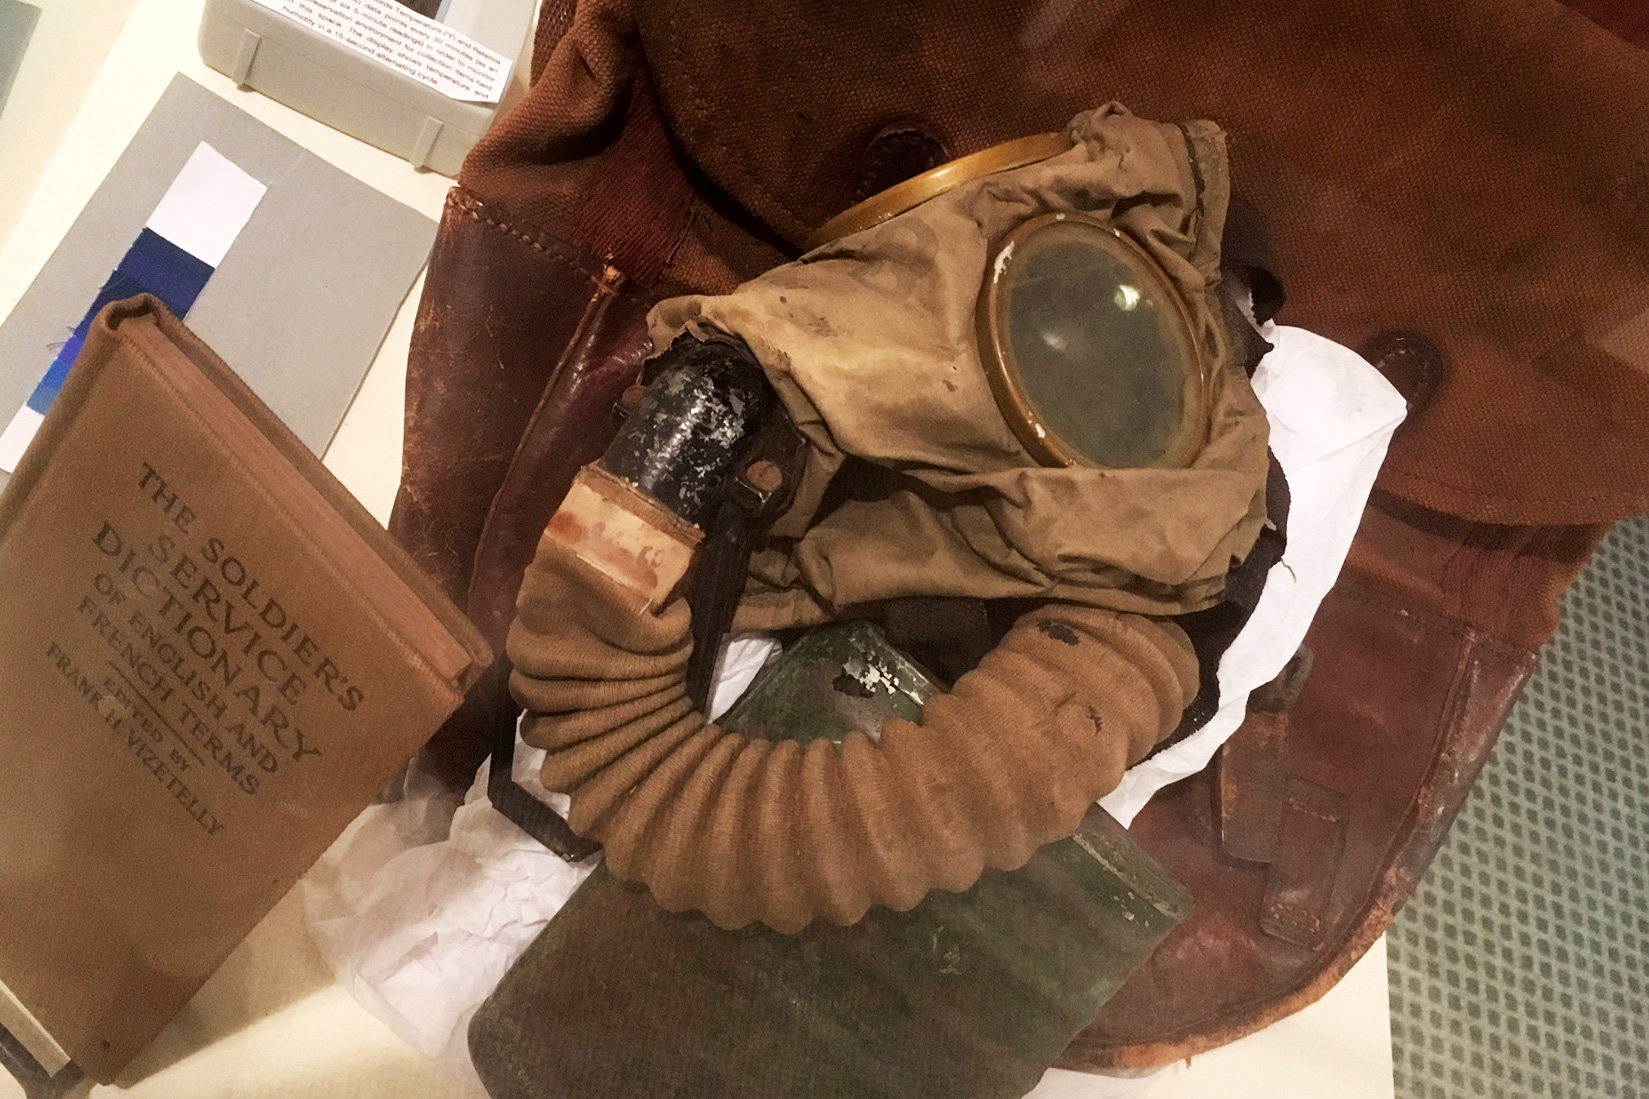 A soldier's gas mask and dictionary of English and French terms